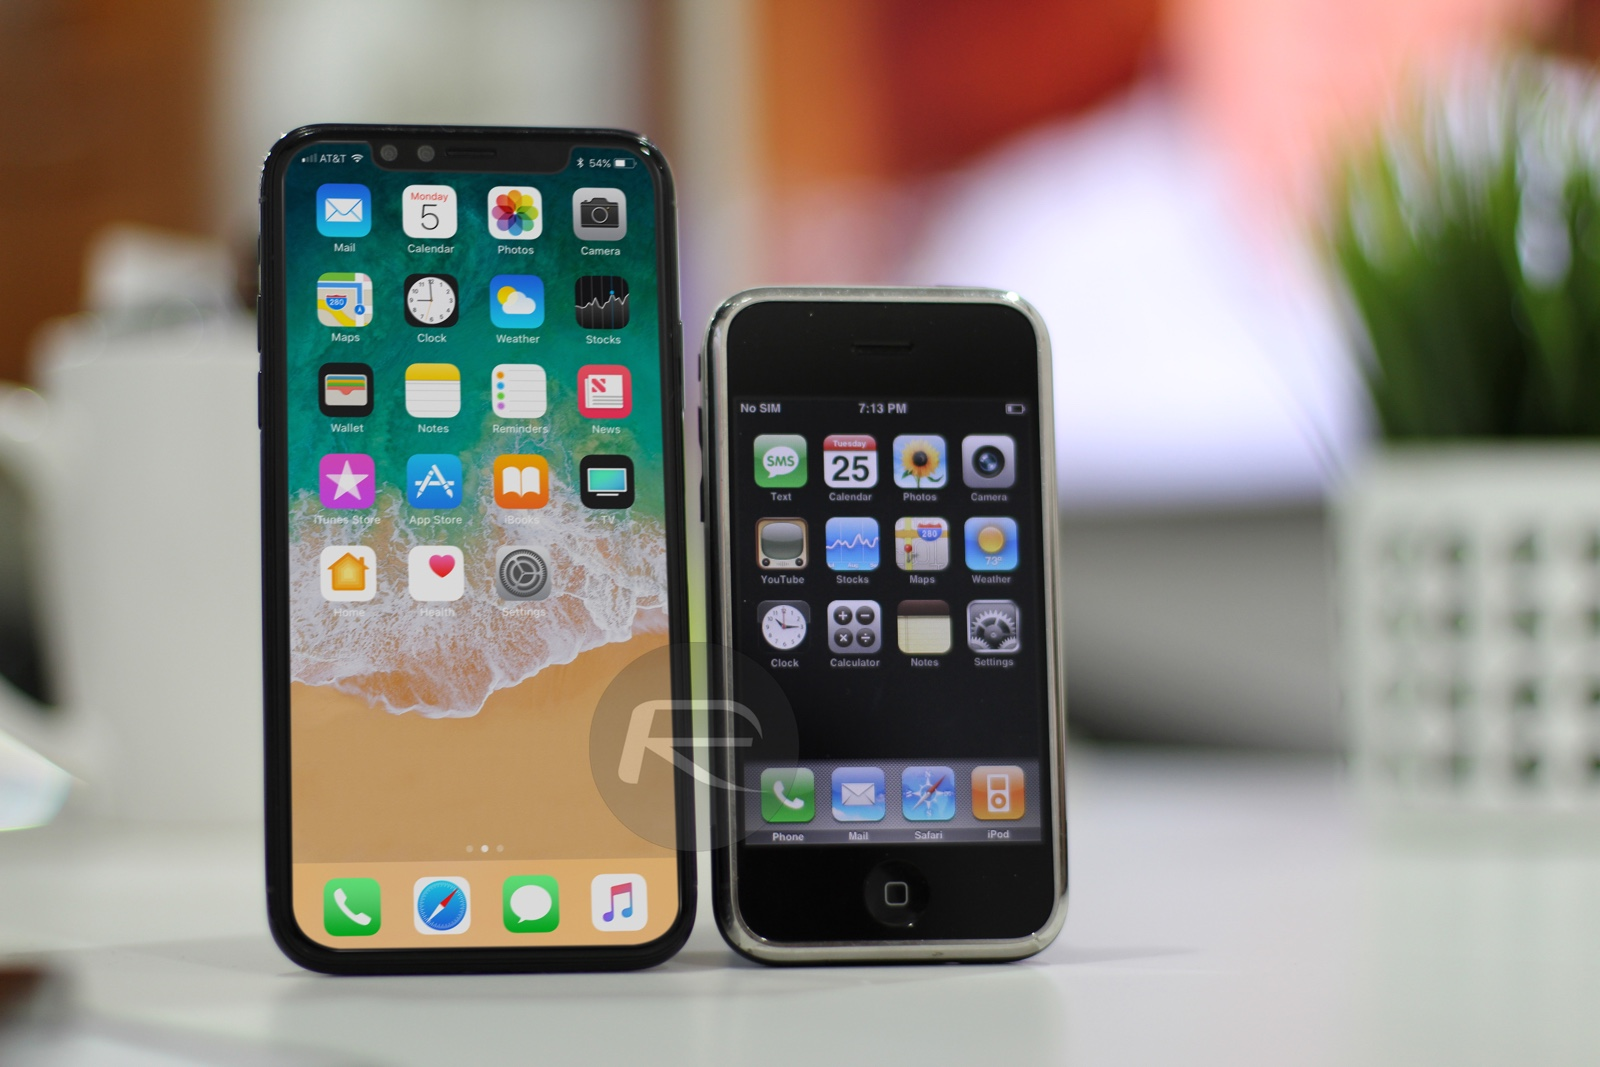 iPhone X/8 vergeleken met iPhone 2G.